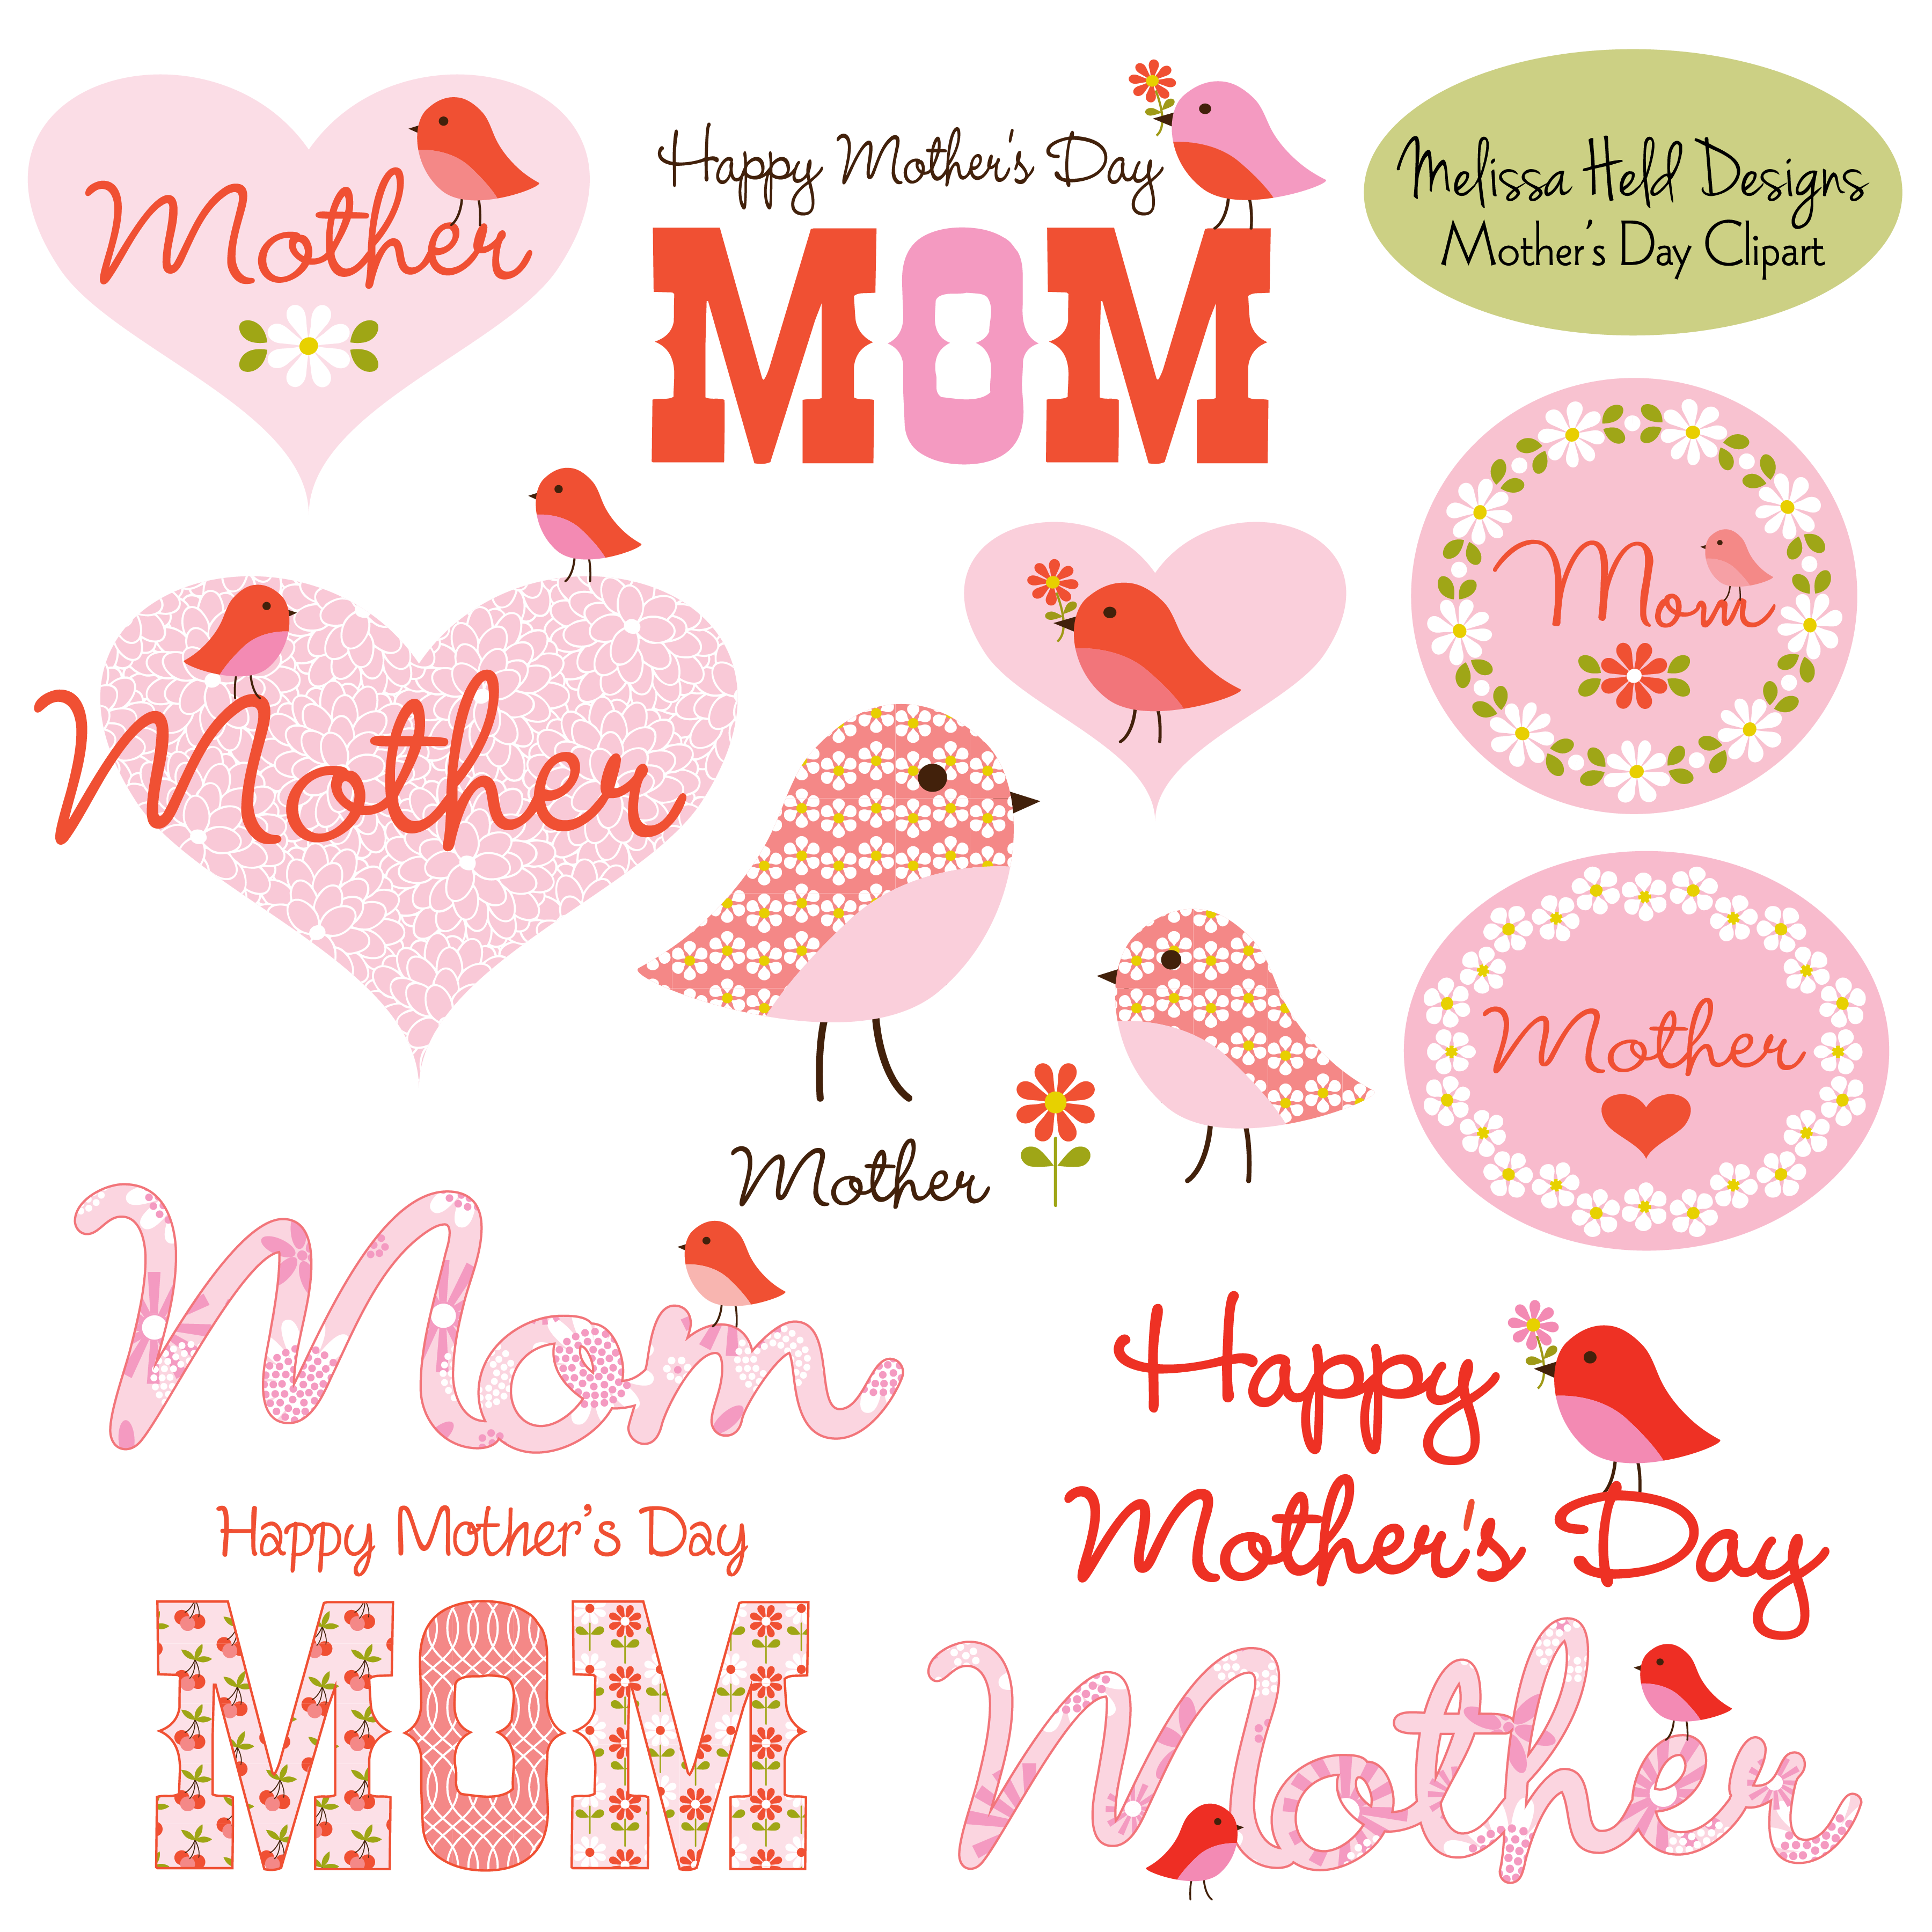 medium resolution of happy mother day quotes happy mothers day images mother day gifts mothers day